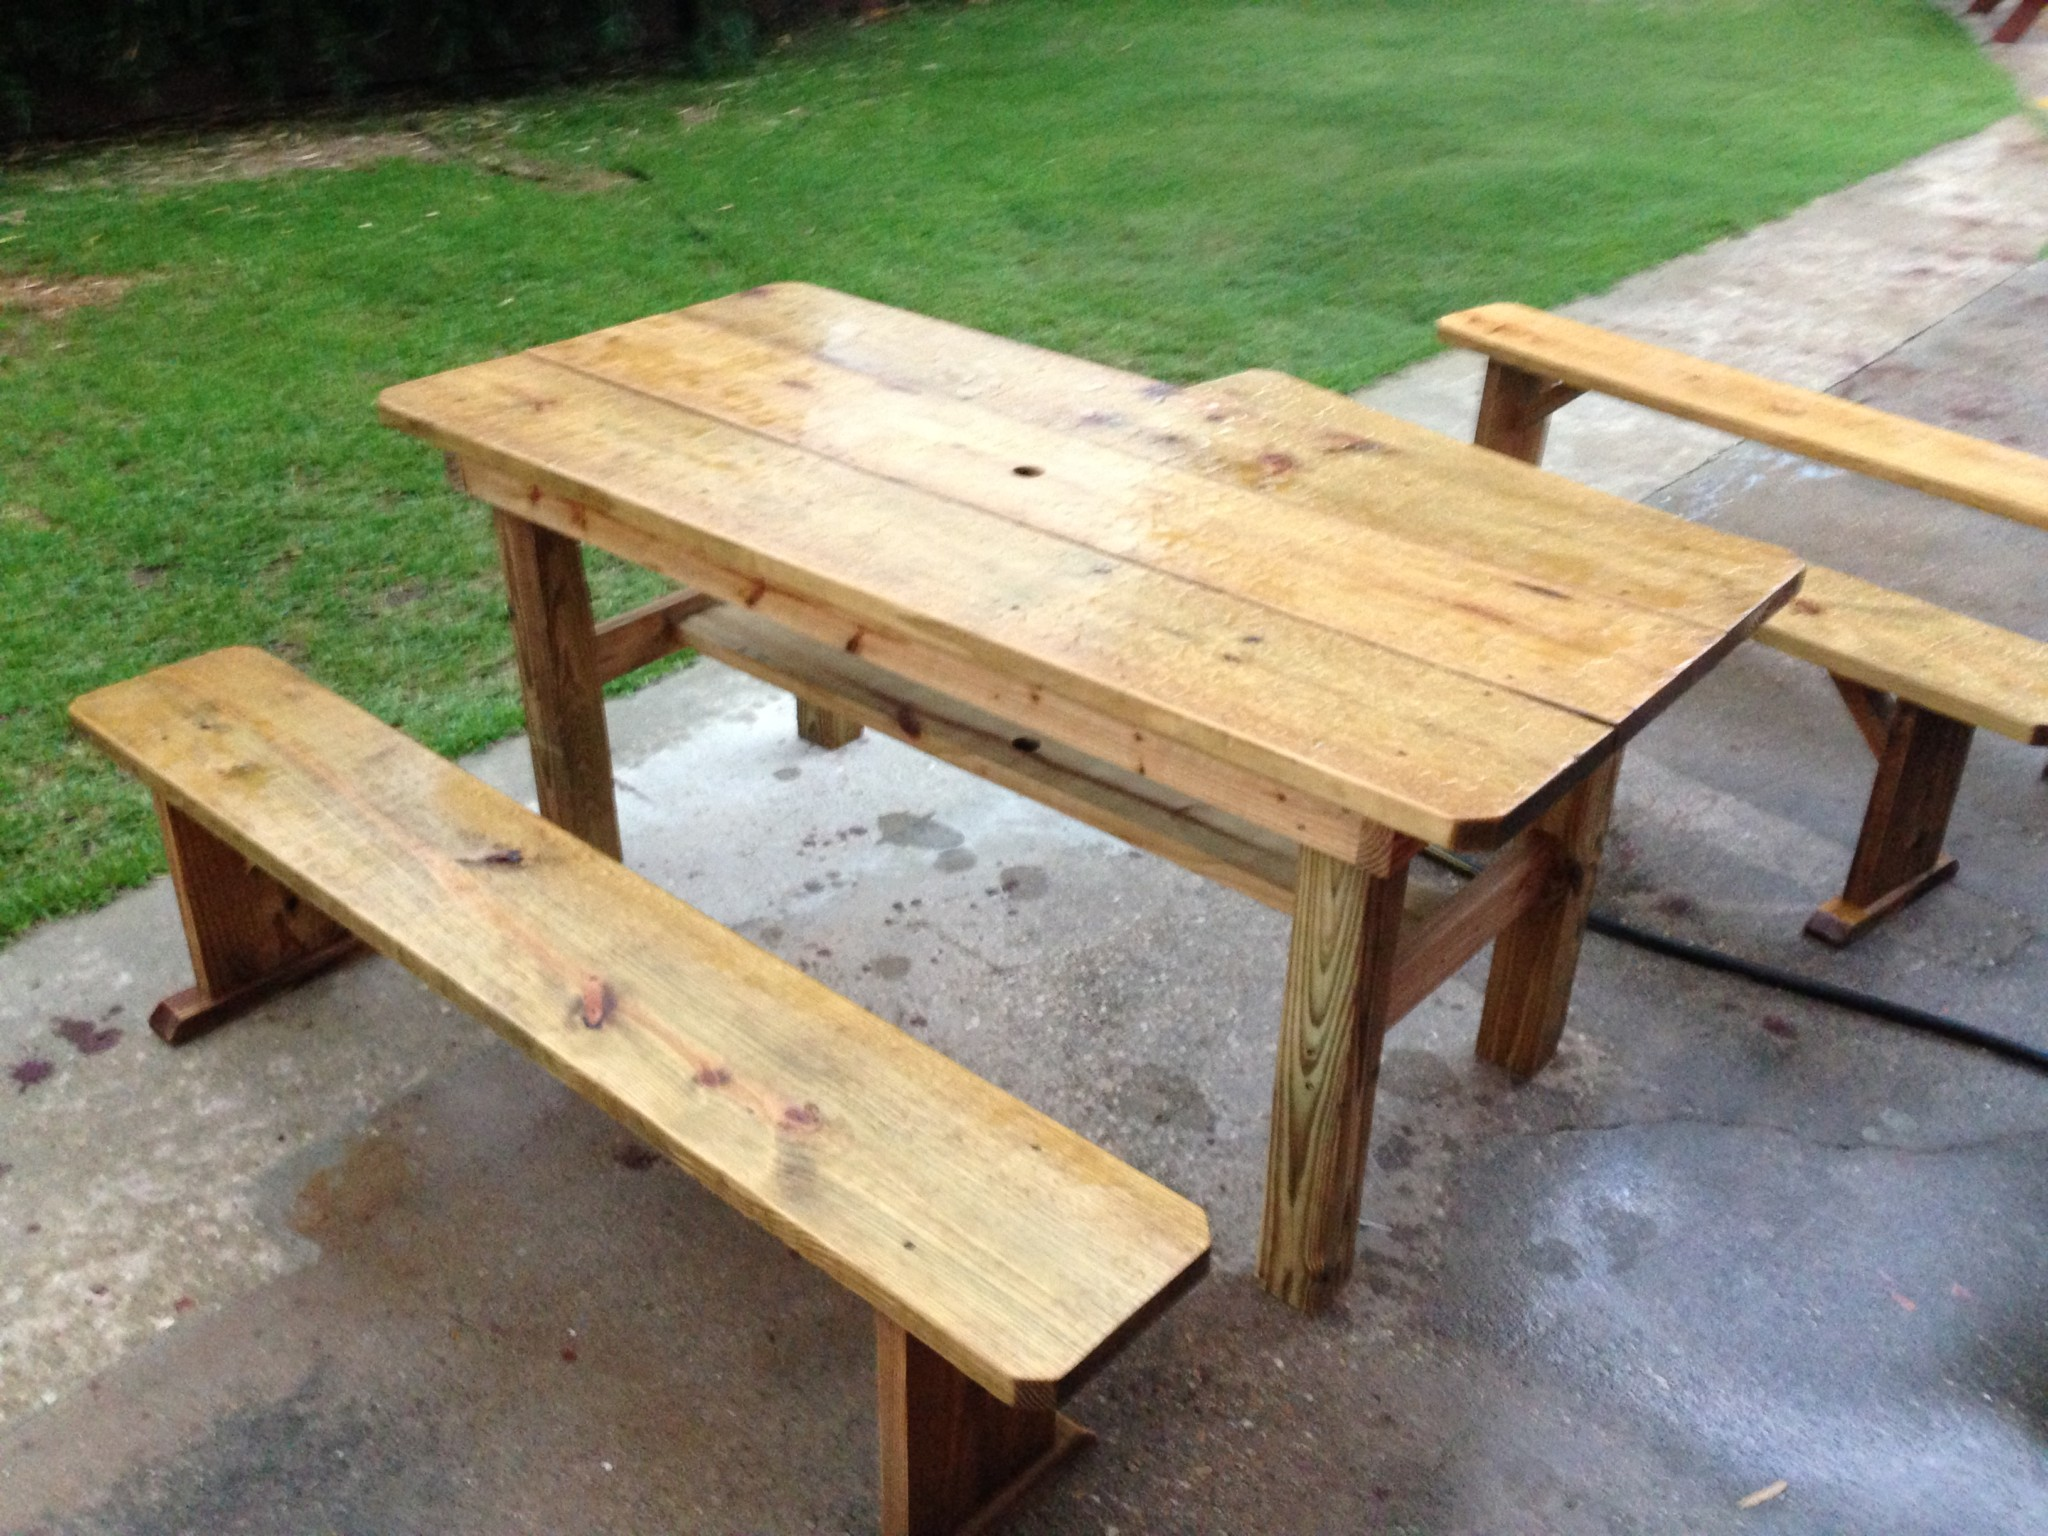 Picnic Tables NOLA Woodworks - Treated lumber picnic table